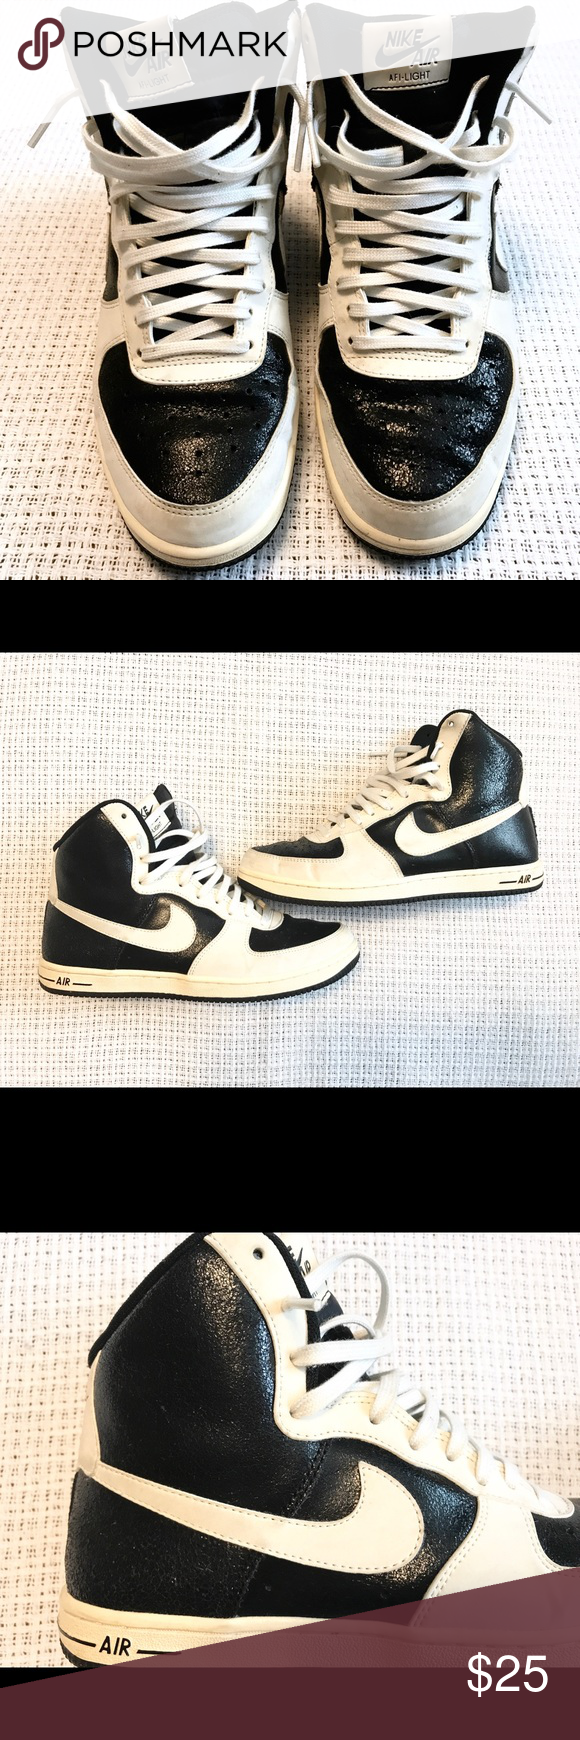 frio Cumplir testimonio  Nike Air Sneakers Nike Air AFI Light sneakers 👟 Size 7 ✨Textured Black and  Off White/Cream color. Excellent used condition/ supe… | Sneakers, Nike air,  Black nikes